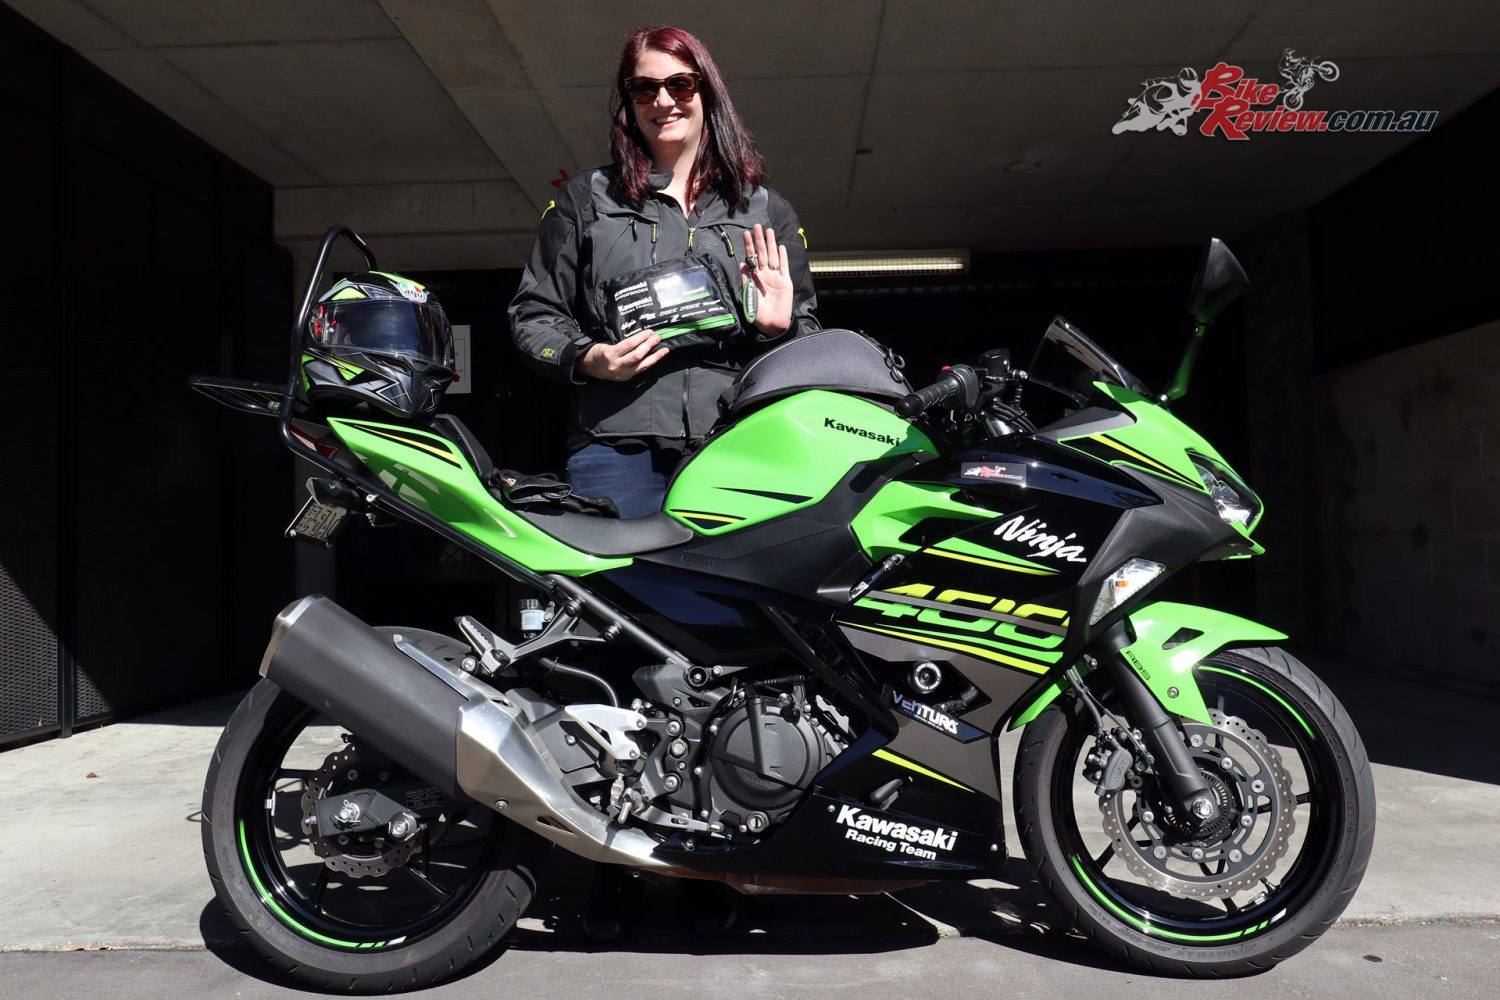 Sam had to wait till she finished work to officially get the keys to our Project Ninja 400!